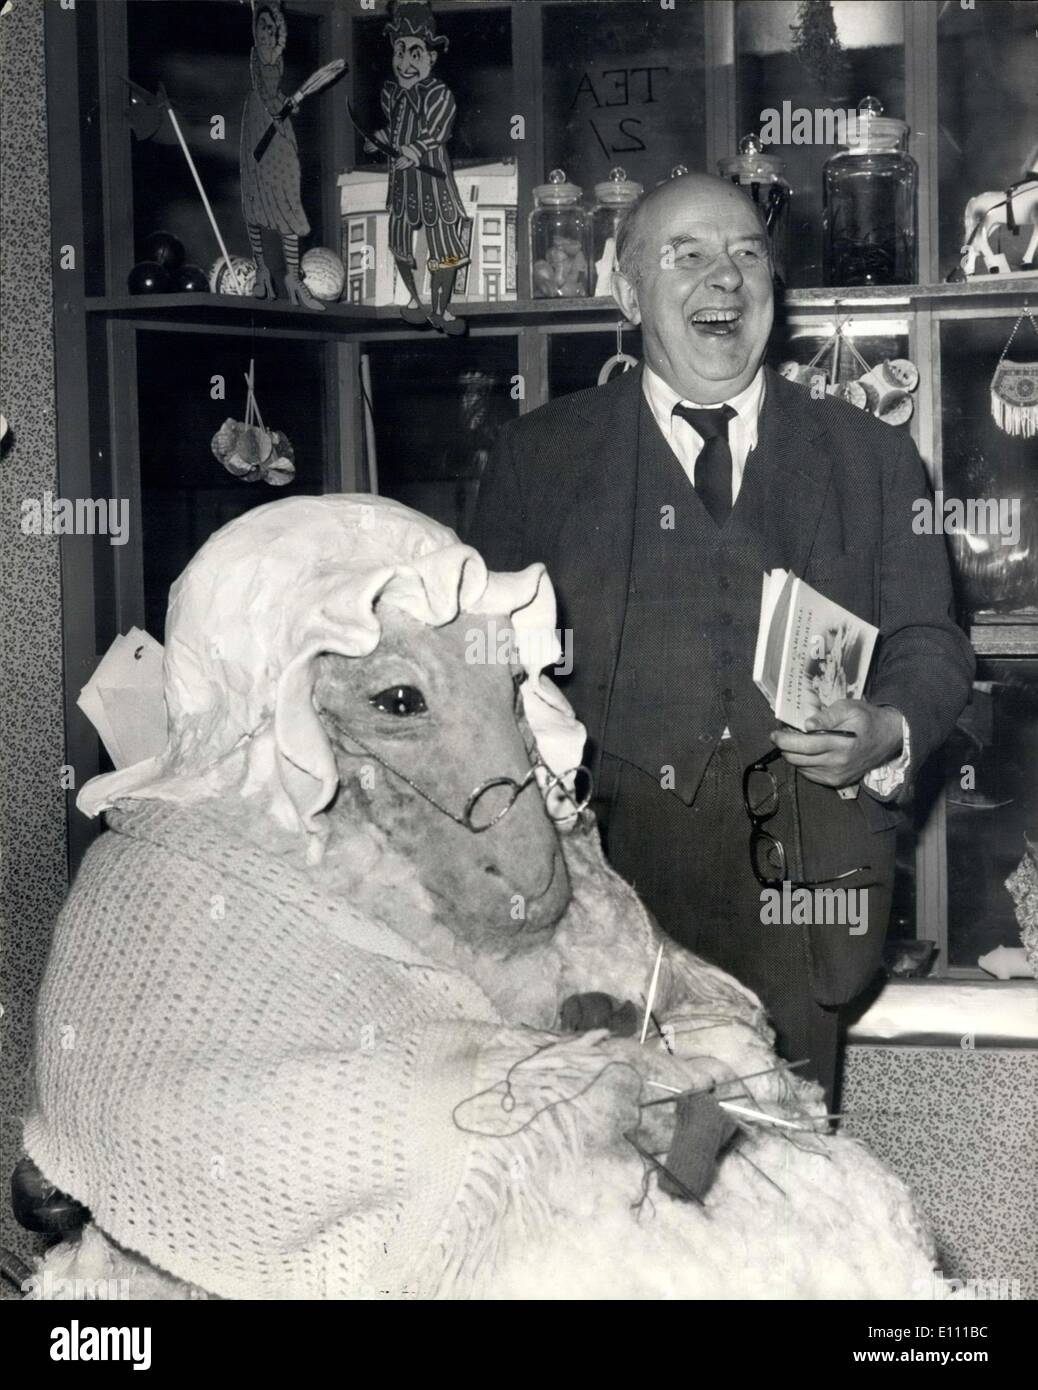 Mar. 24, 1975 - Lewis Carroll Exhibition at Hatfield House: Sir John Betjeman today opened an exhibition depicting the life, writings and diverse interests of Lewis Carroll (the Rev.Charles Lutwidge Dodgson, 1832-1898), author of ''Alice in Wonderland'' and ''Through the Looking Glass''. held in the newly-restored Riding School at the Marquess of Salisbury.The exhibition, which opens to the public tomorrow, will remain open until October 5th. Photo Shows Sir John Betjeman is amused when looking at a model of the Knitting Sheep - when he toured the exhibition today. - Stock Image